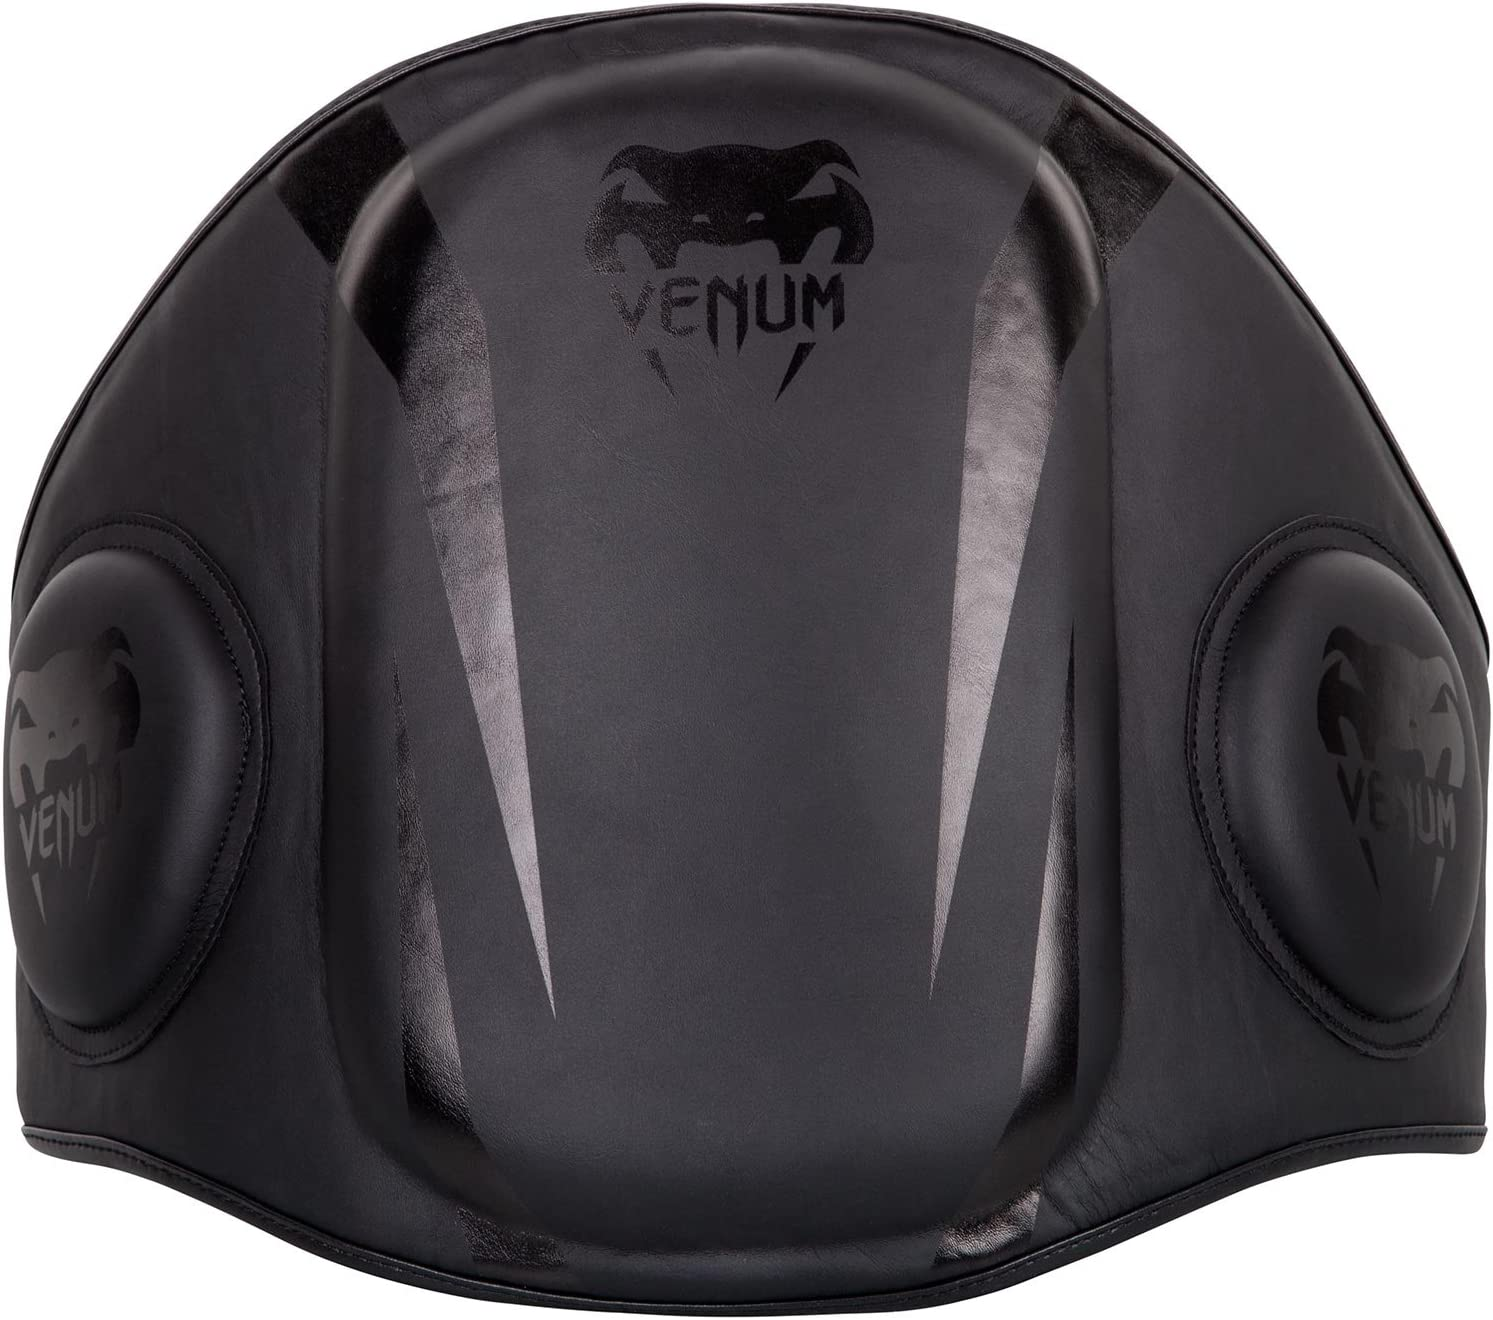 High quality new Venum Baltimore Mall Elite Protector Belly